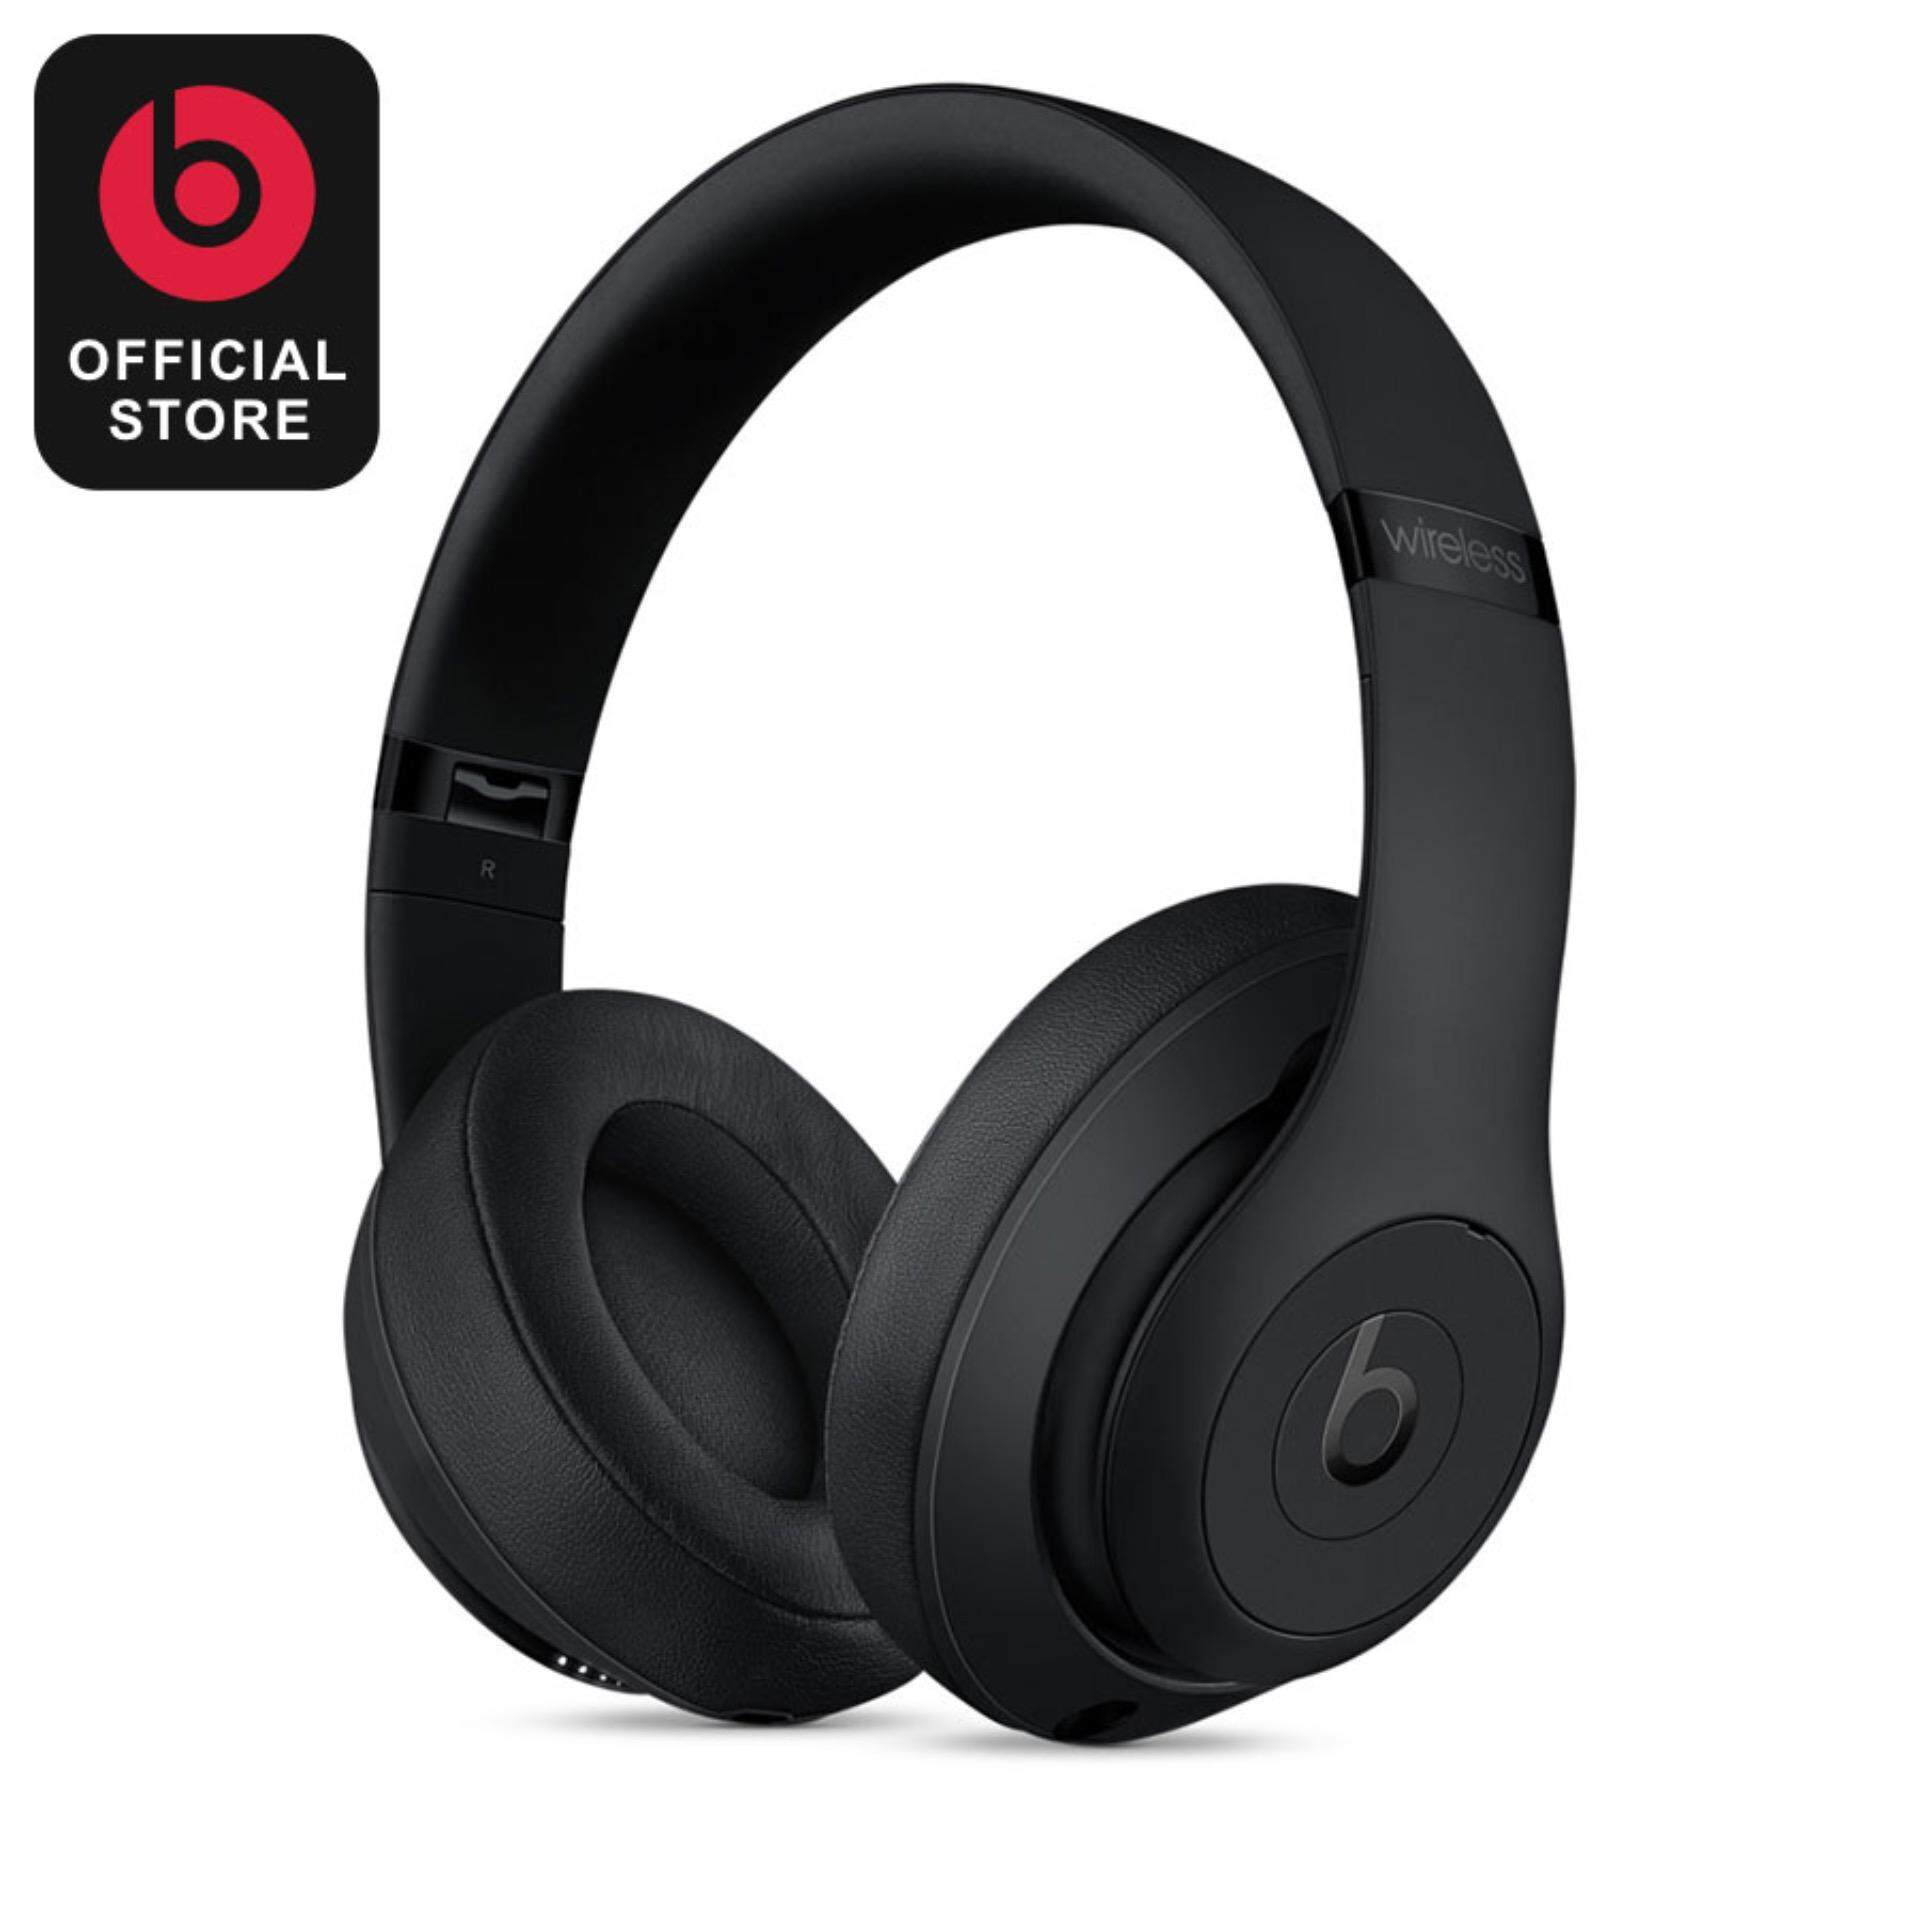 6a93d31a1ee Beats By Dr. Dre - Buy Beats By Dr. Dre at Best Price in Malaysia ...